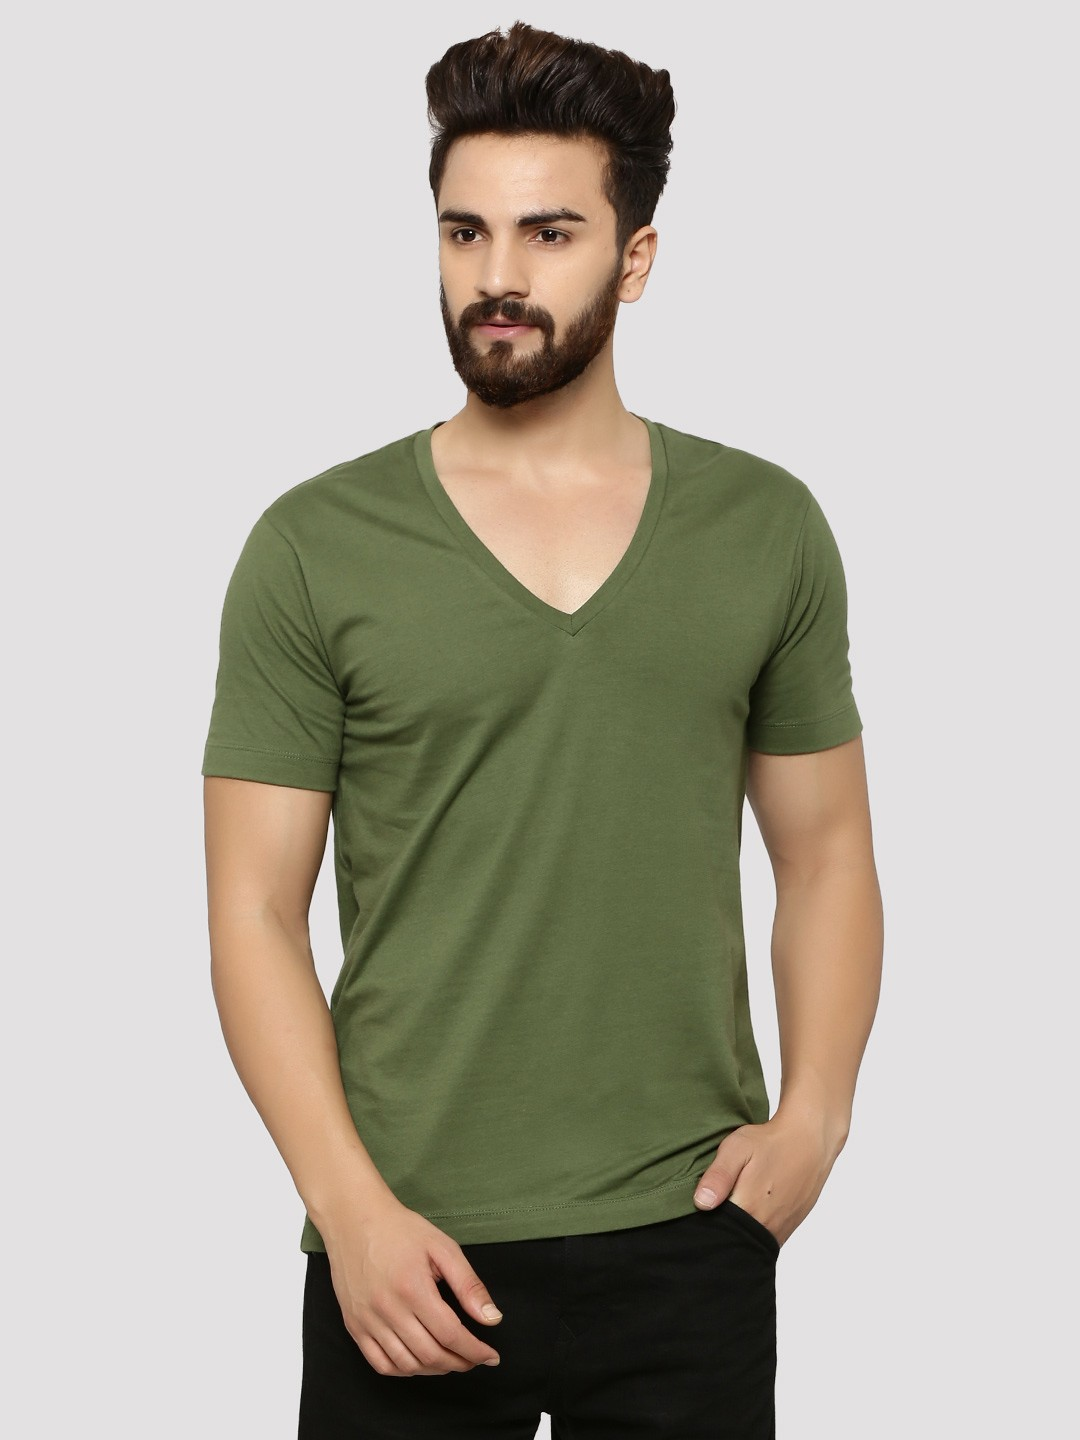 kumau.ml: Buy Men's T-Shirts online at low prices in India at kumau.ml Shop T-Shirts for men from popular brands such as 1ly Cargos, Zovi, Giftsmate and more for best prices at kumau.ml Amazon Try Prime WYO Men's Solid Plain Casual Slim Fit Half Sleeve V-Neck T-Shirt.